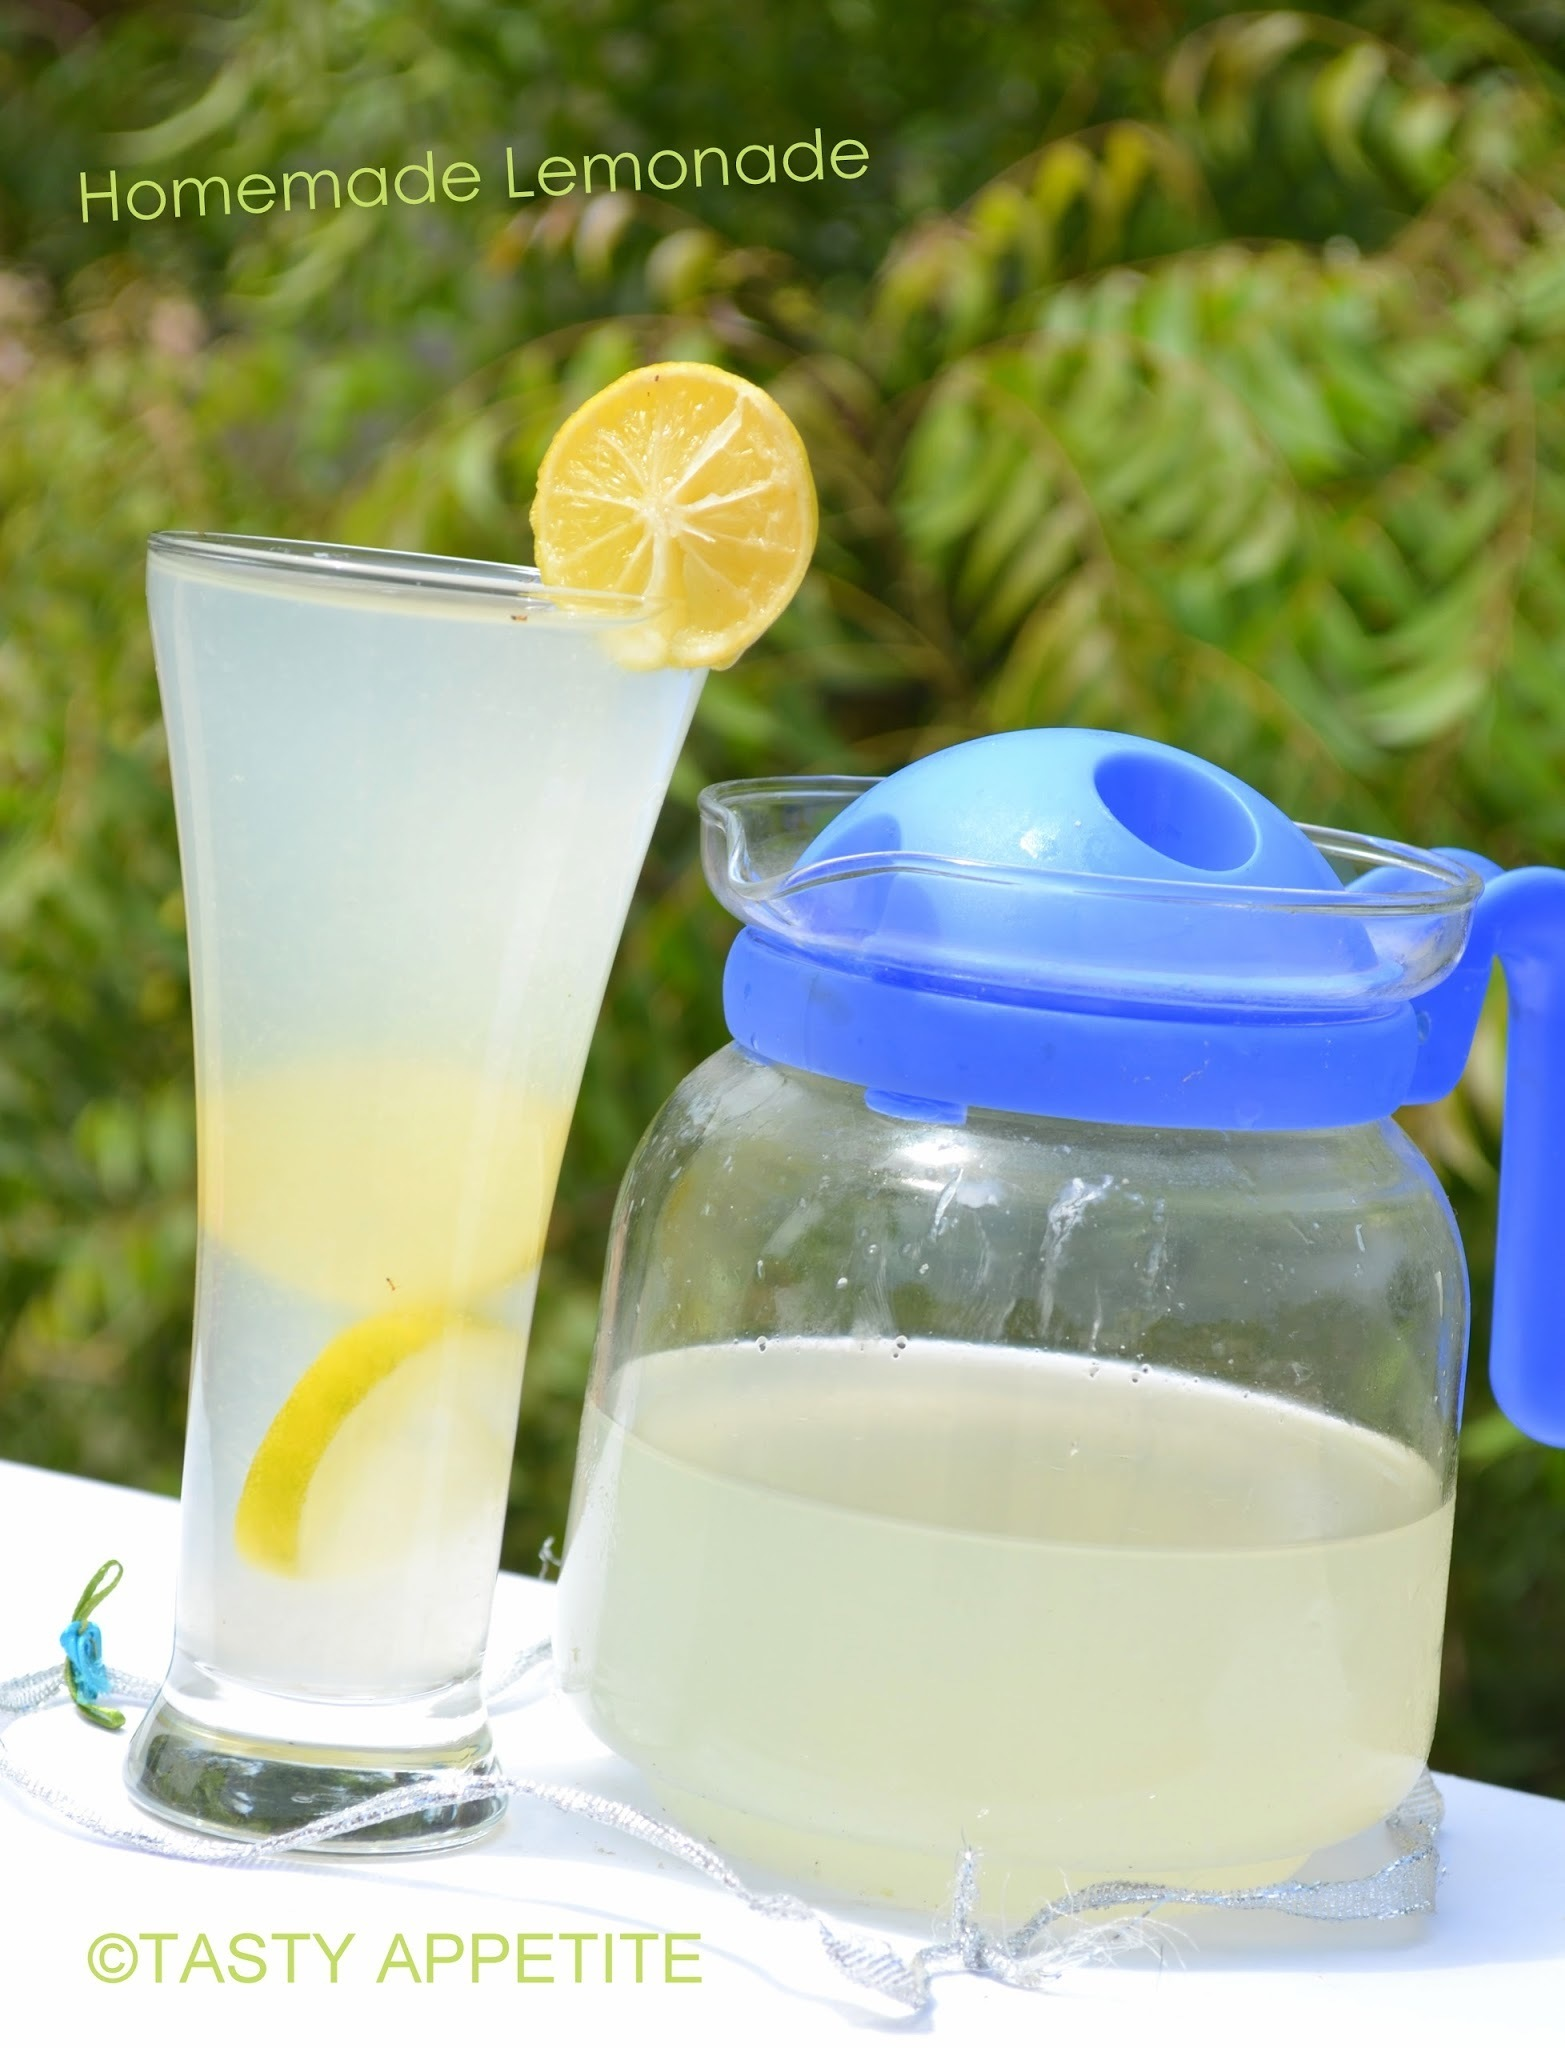 How to make Homemade Lemonade: